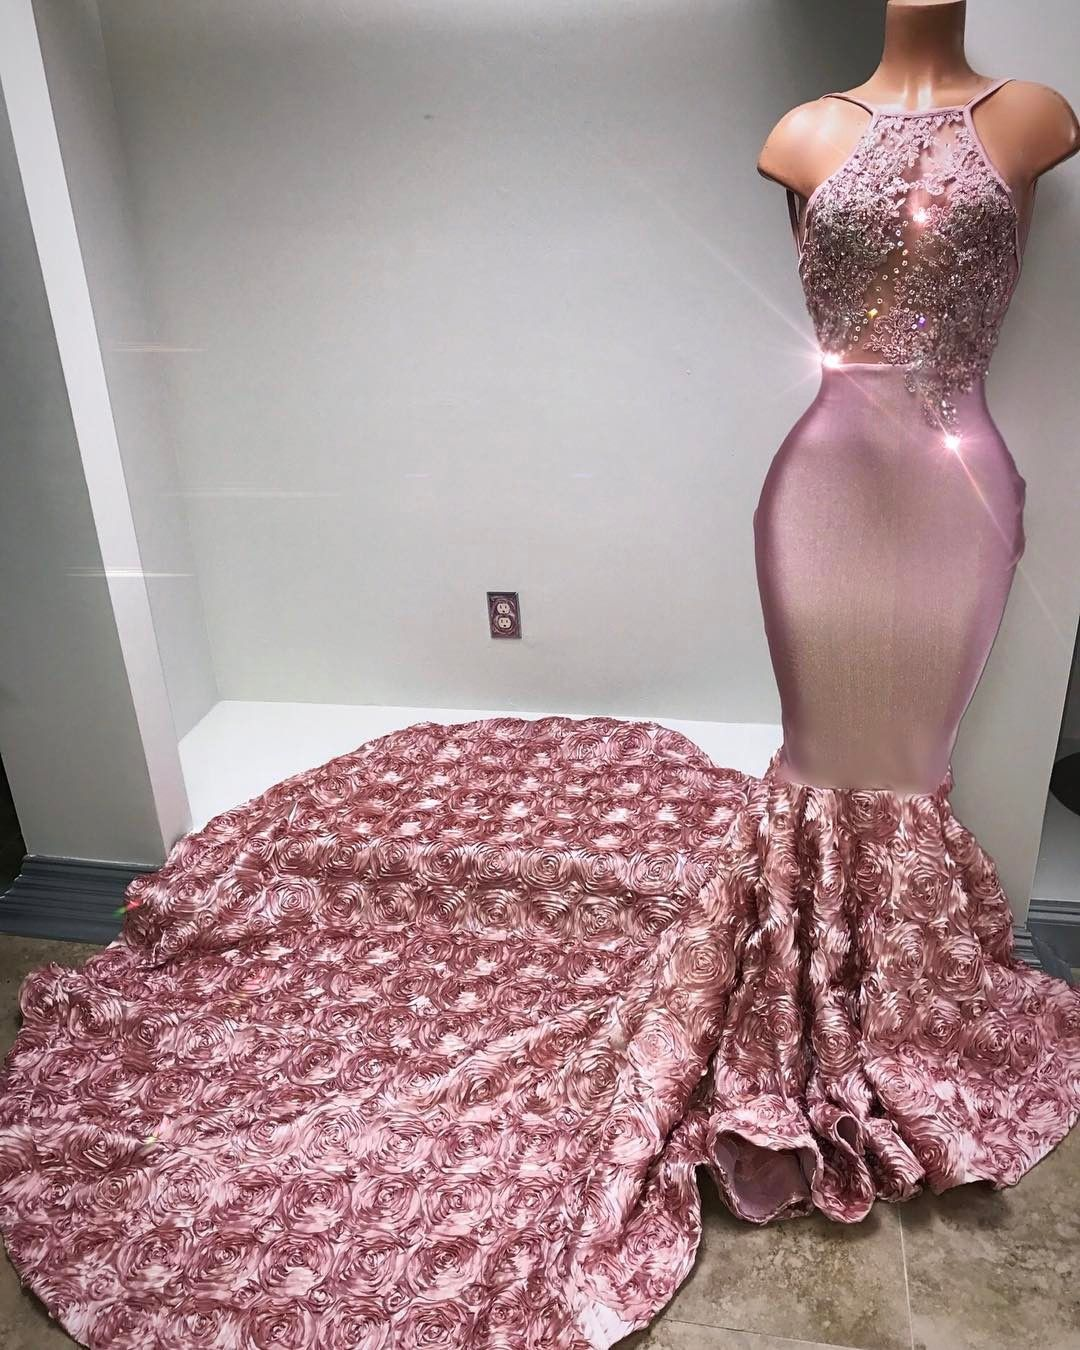 Pinterest theyadoreme prompageant pinterest pink barbie